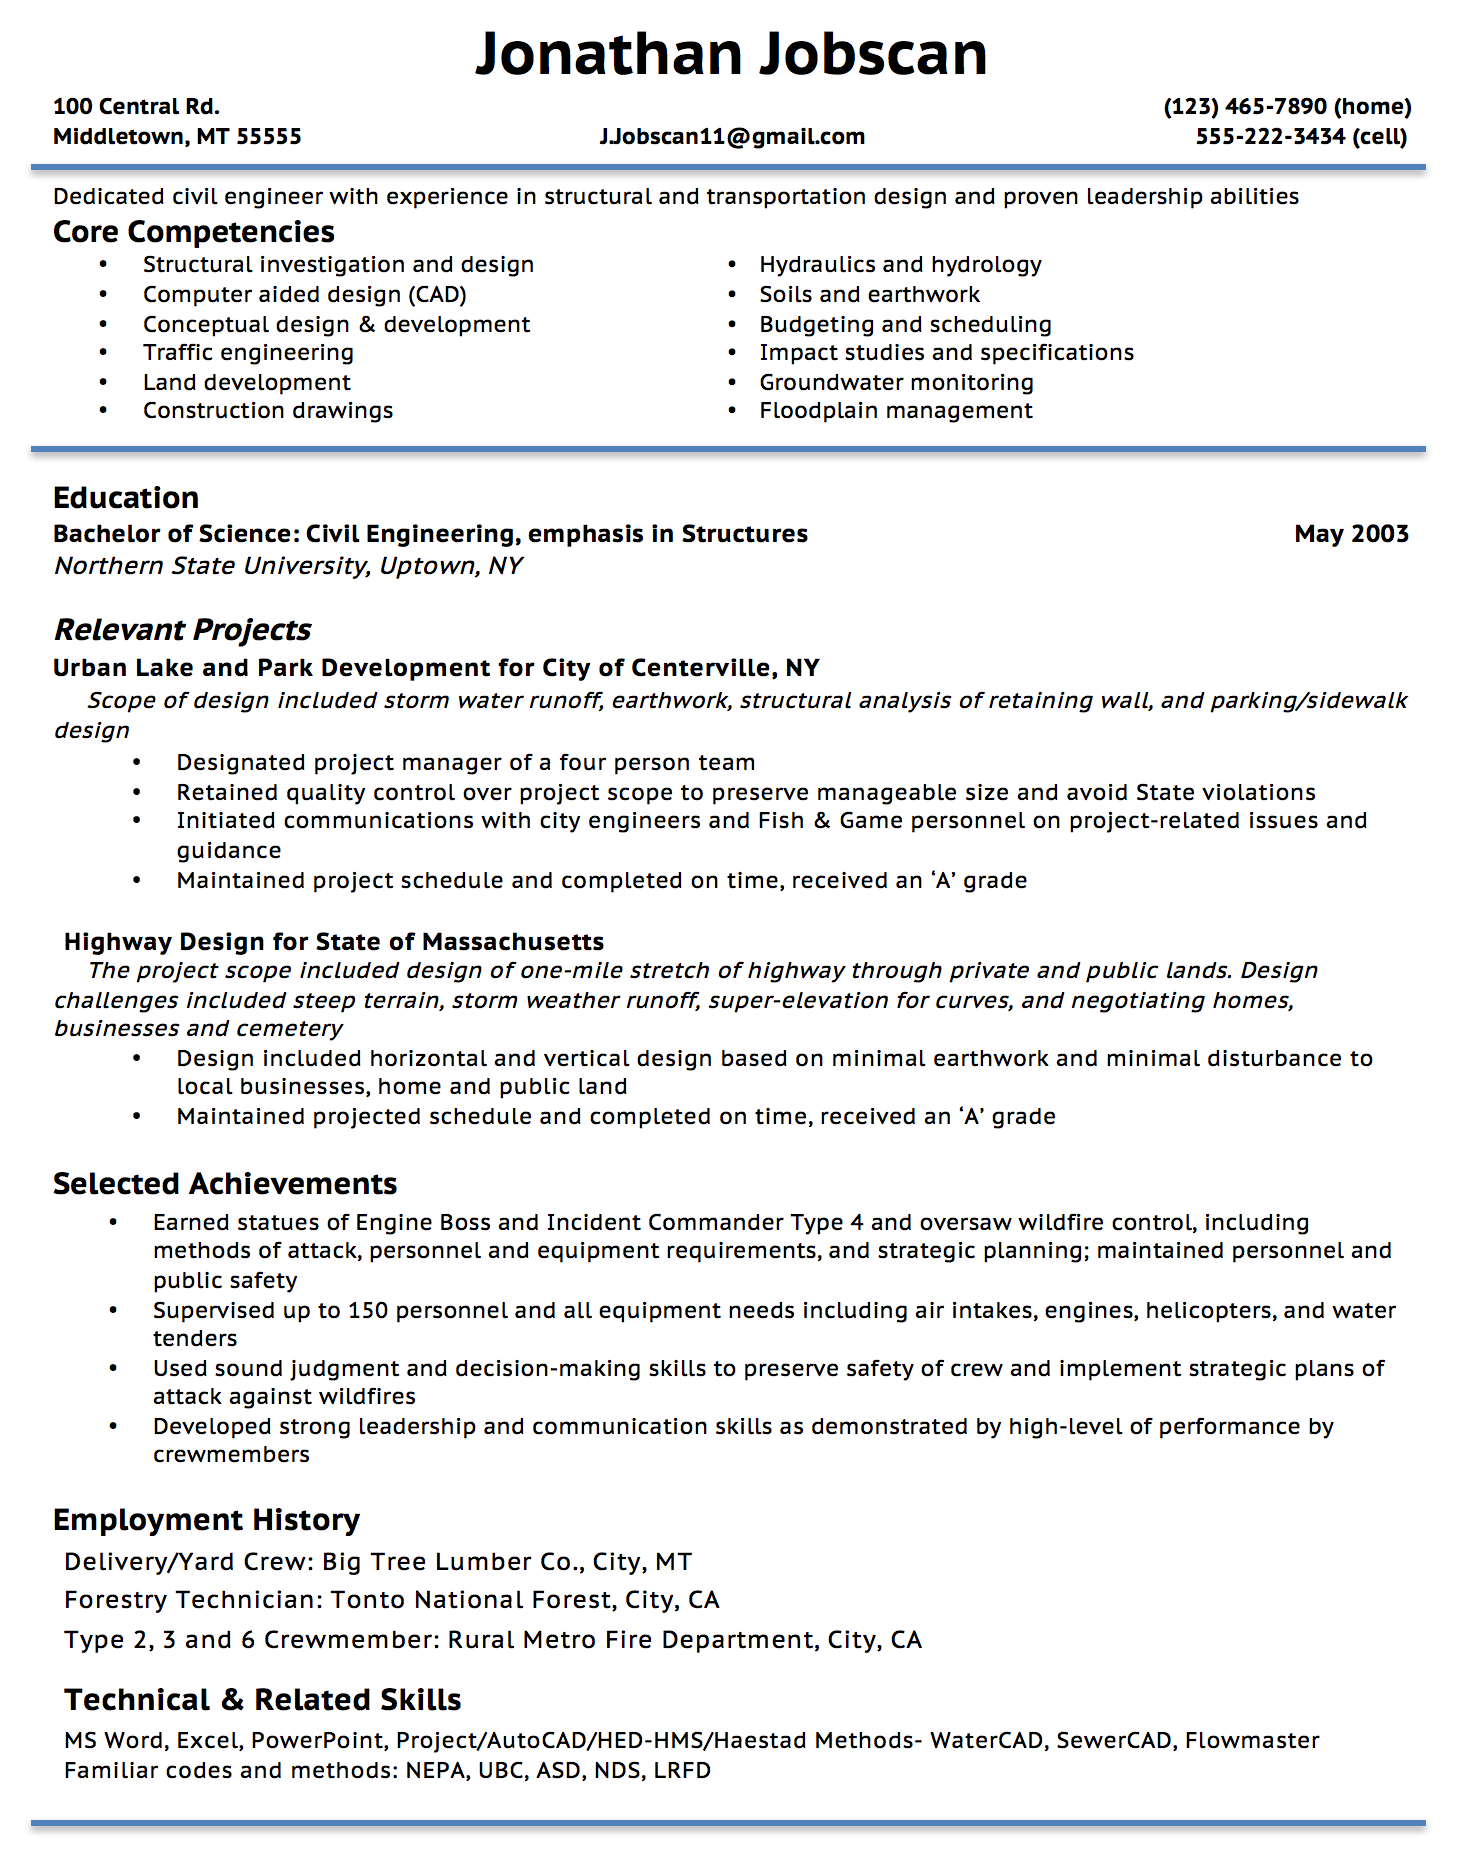 Picnictoimpeachus  Unique Resume Writing Guide  Jobscan With Hot Example Of A Functional Resume Format With Beautiful Teacher Job Description For Resume Also Resume Instructions In Addition Community Relations Resume And Good Resume Action Words As Well As Past Tense On Resume Additionally Autocad Resume From Jobscanco With Picnictoimpeachus  Hot Resume Writing Guide  Jobscan With Beautiful Example Of A Functional Resume Format And Unique Teacher Job Description For Resume Also Resume Instructions In Addition Community Relations Resume From Jobscanco